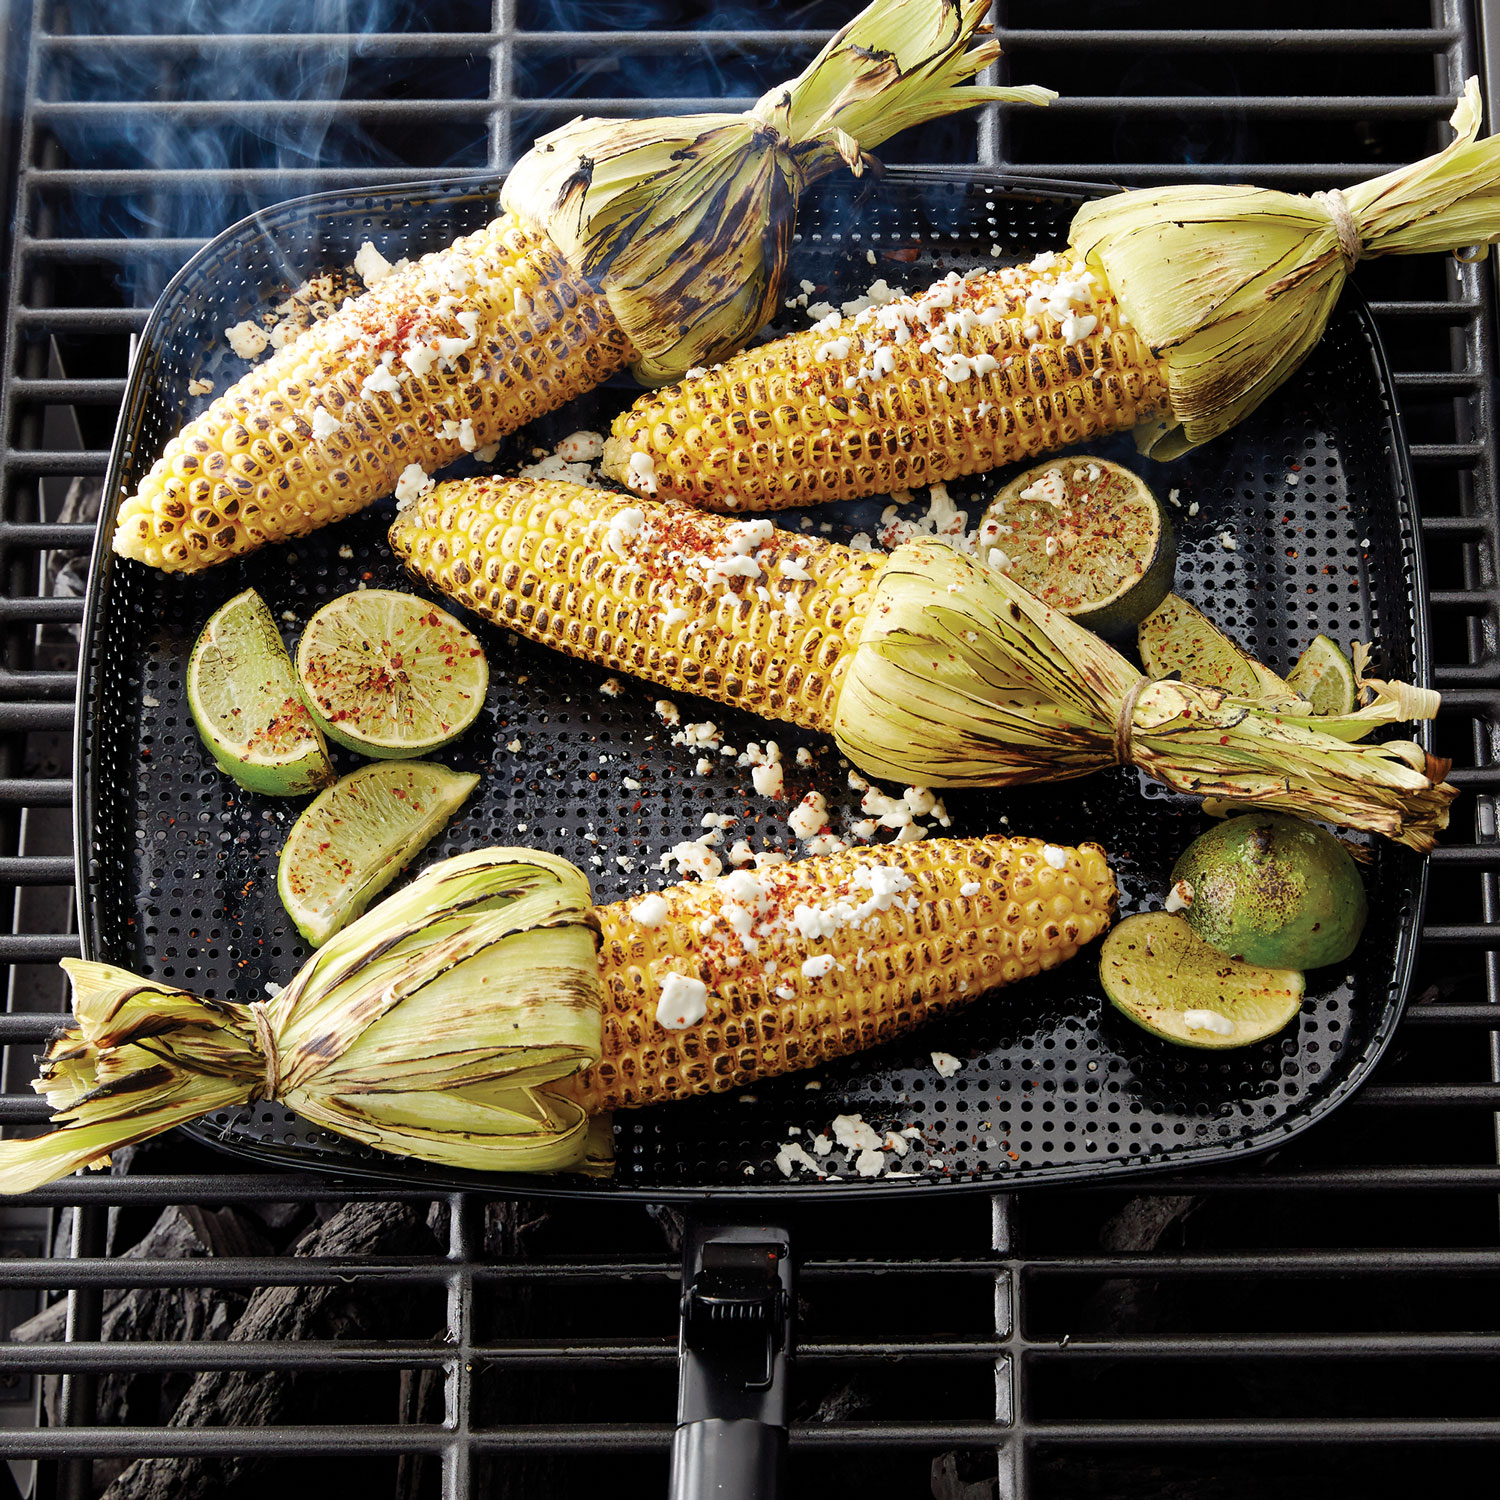 wedding registry product ideas high heat grill griddle williams sonoma with summer corn